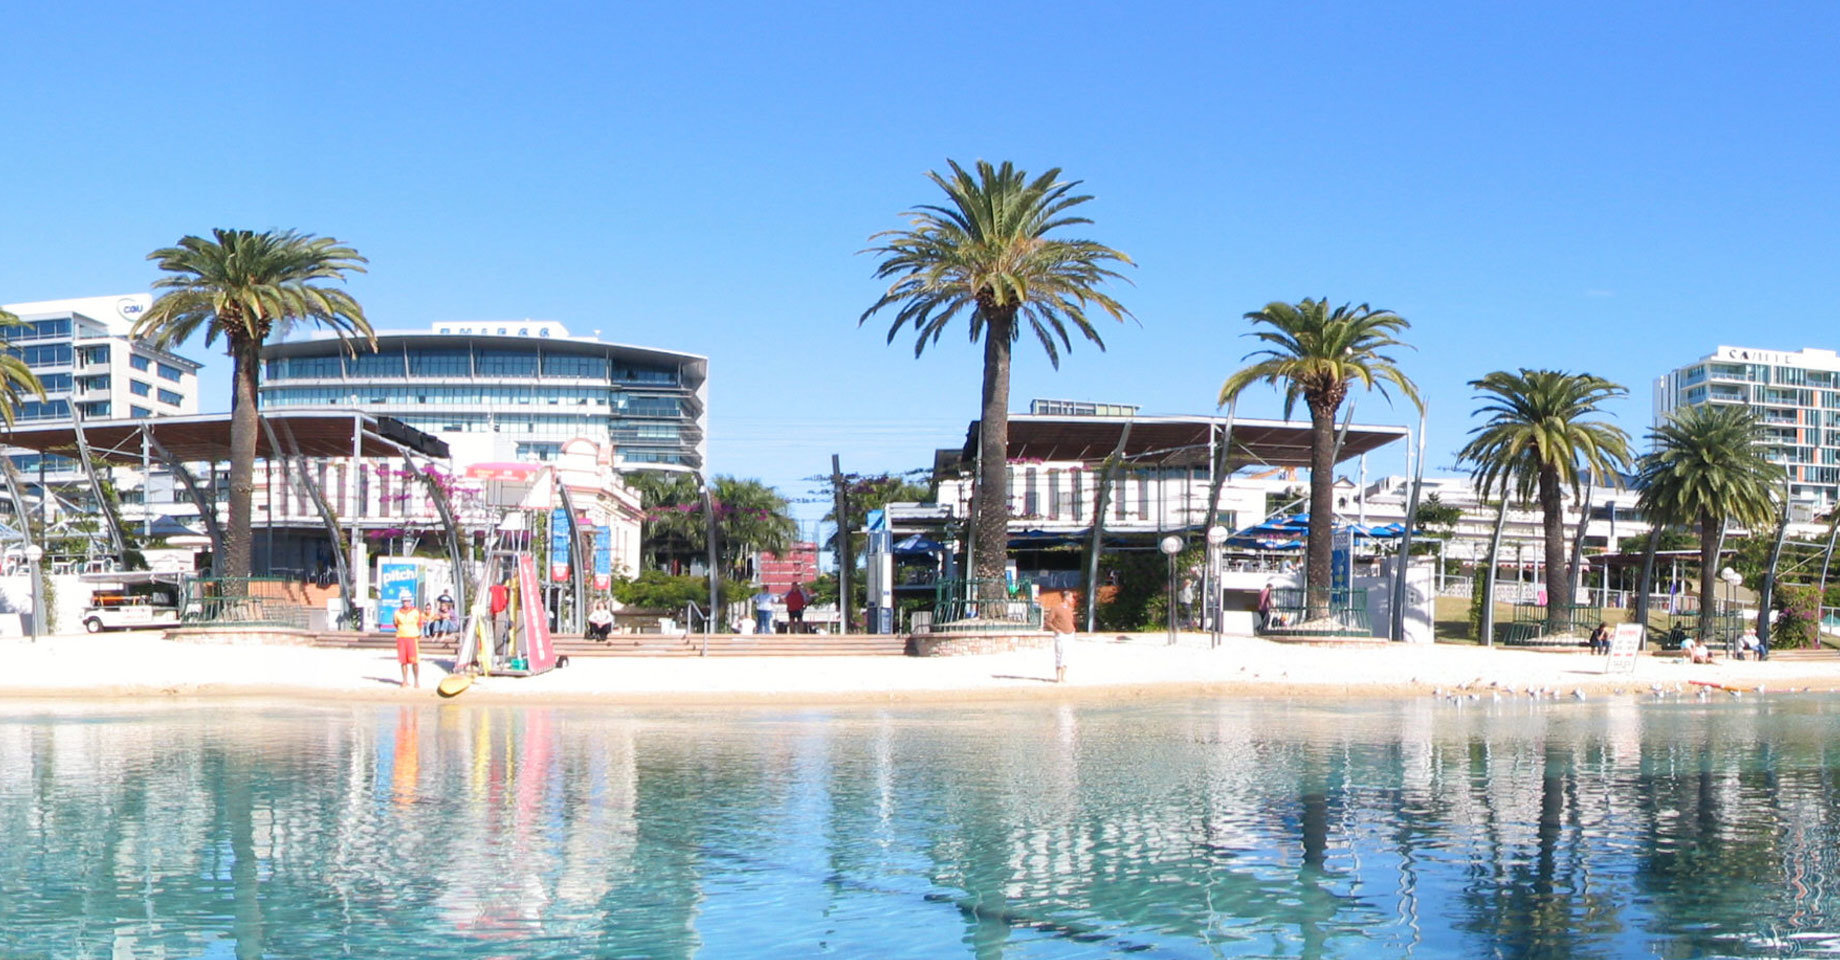 Streets Beach at South Bank Parklands